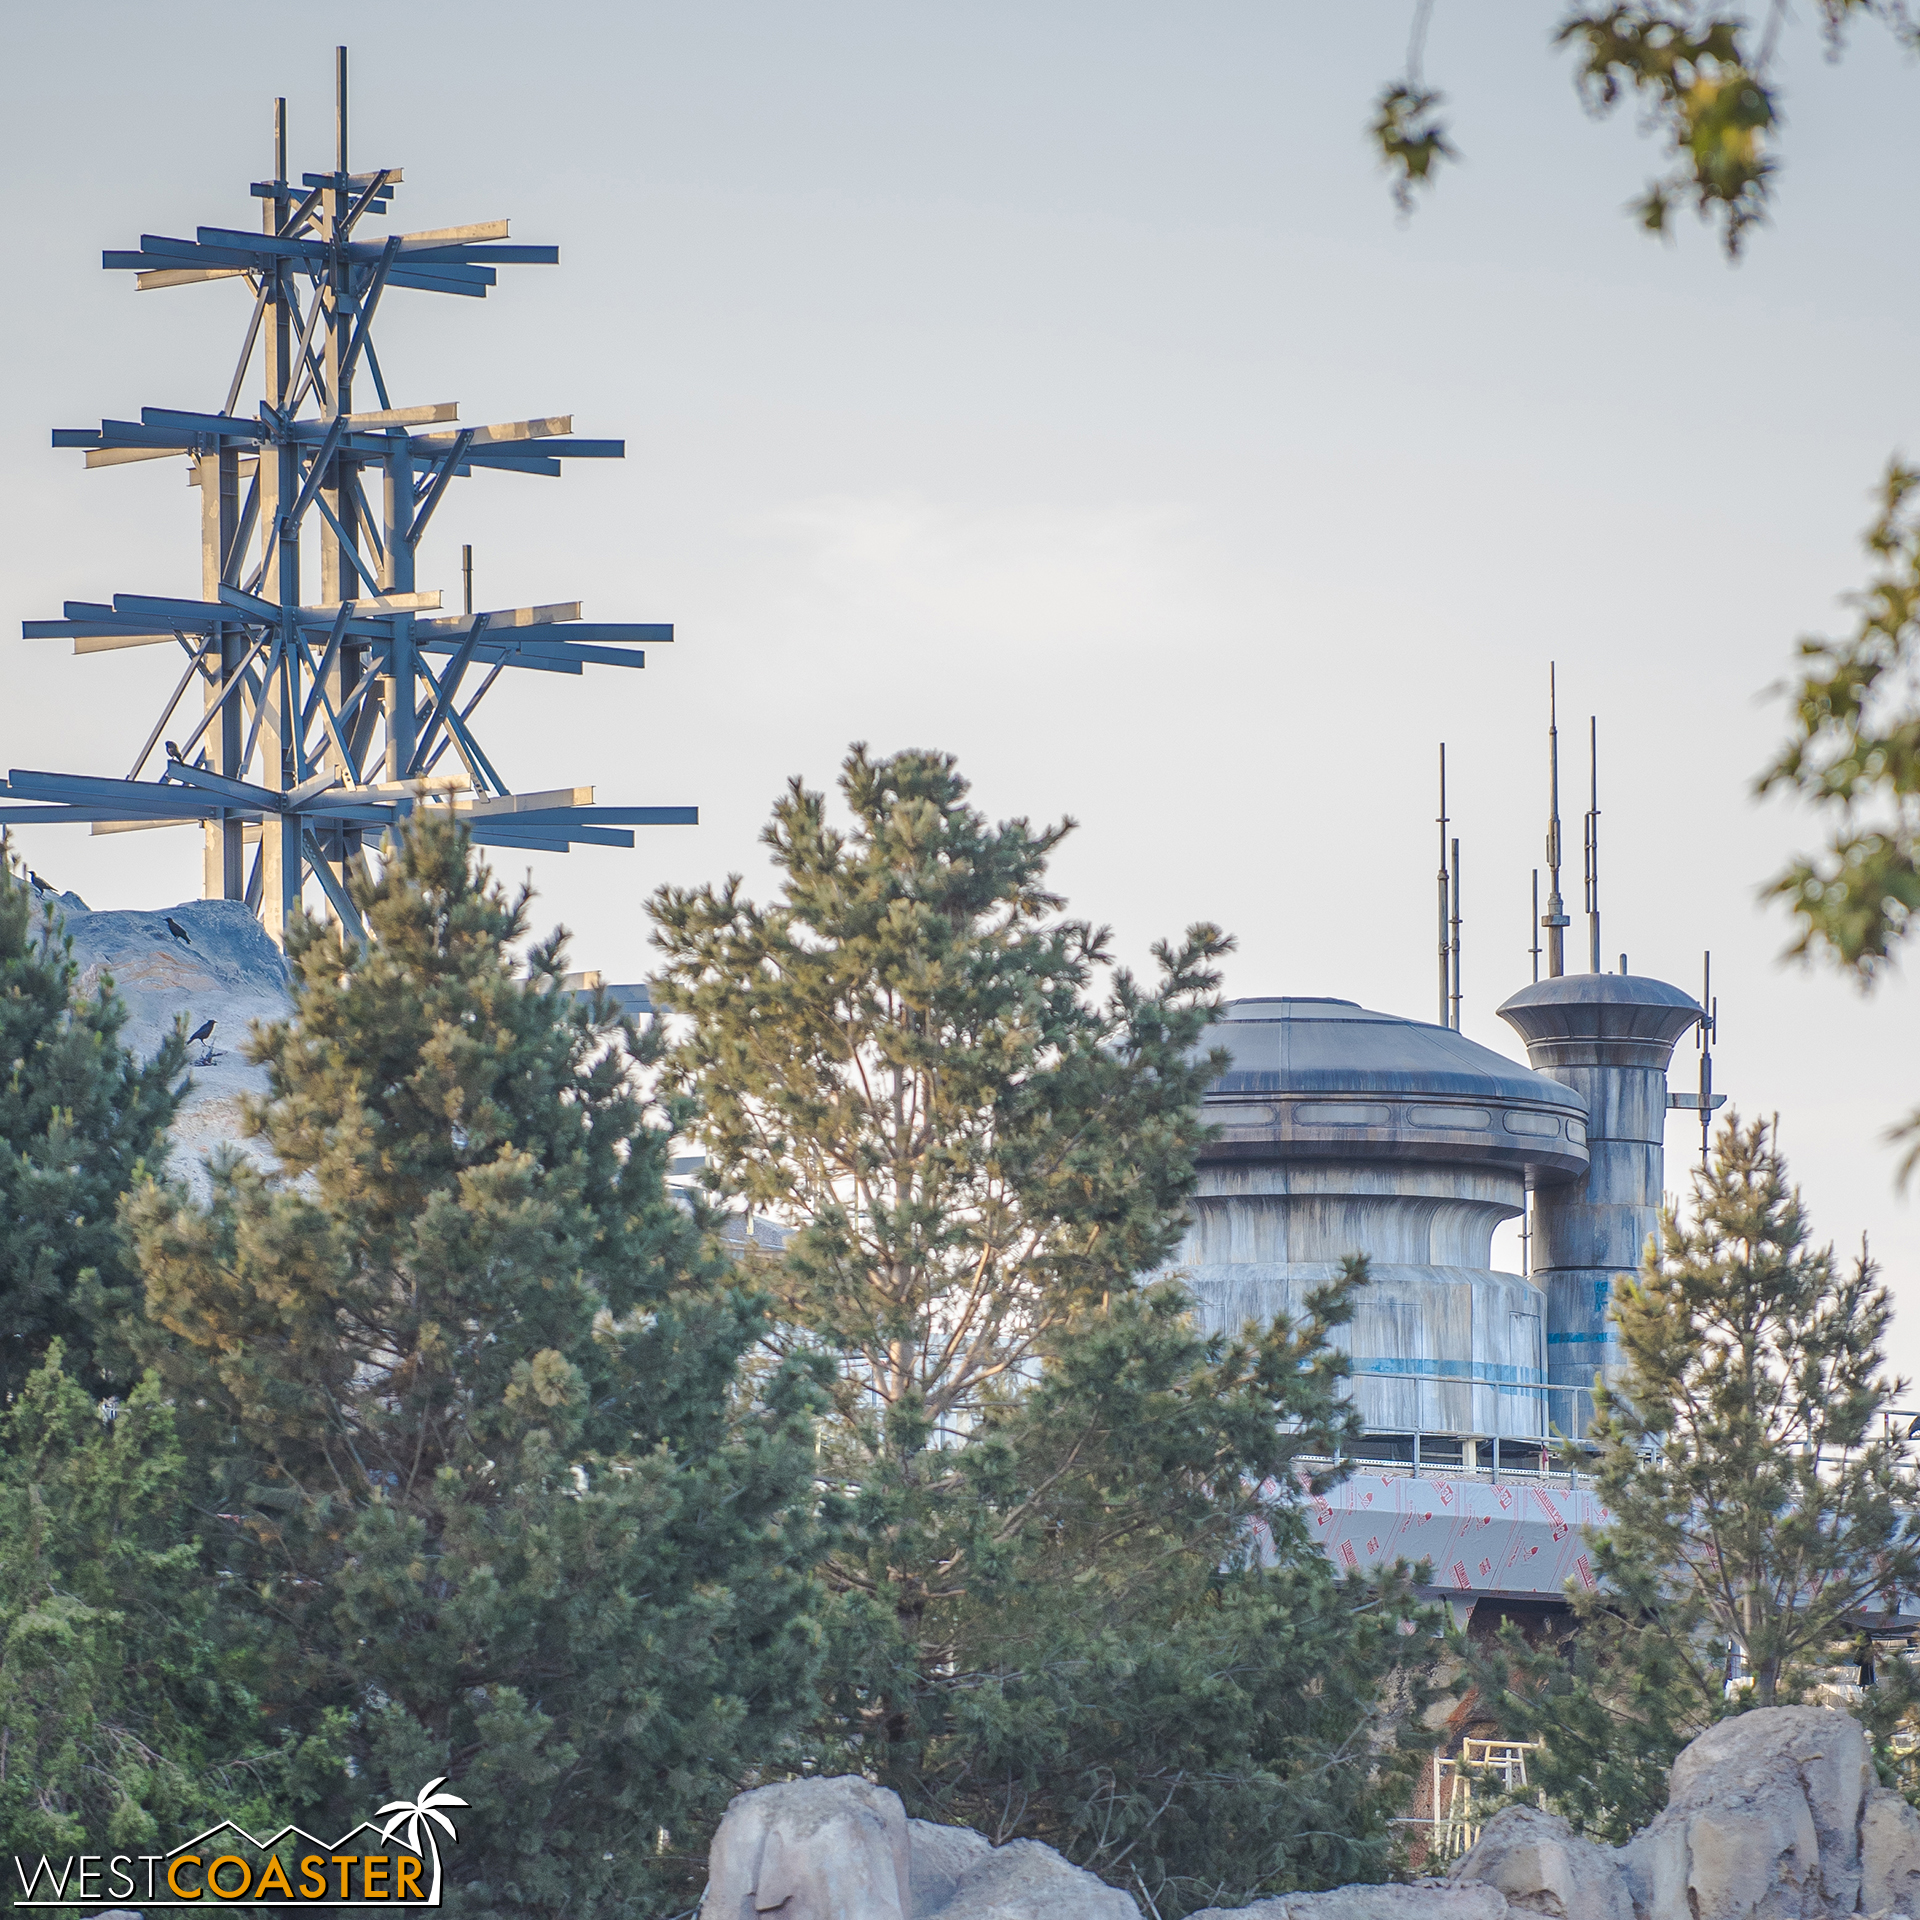 A bit of the architecture of Batuu can be glimpsed along the River too.  A teaser, I suppose, though it does interrupt the Frontierland continuity in a way that the rest of the Batuu landscape does not really.